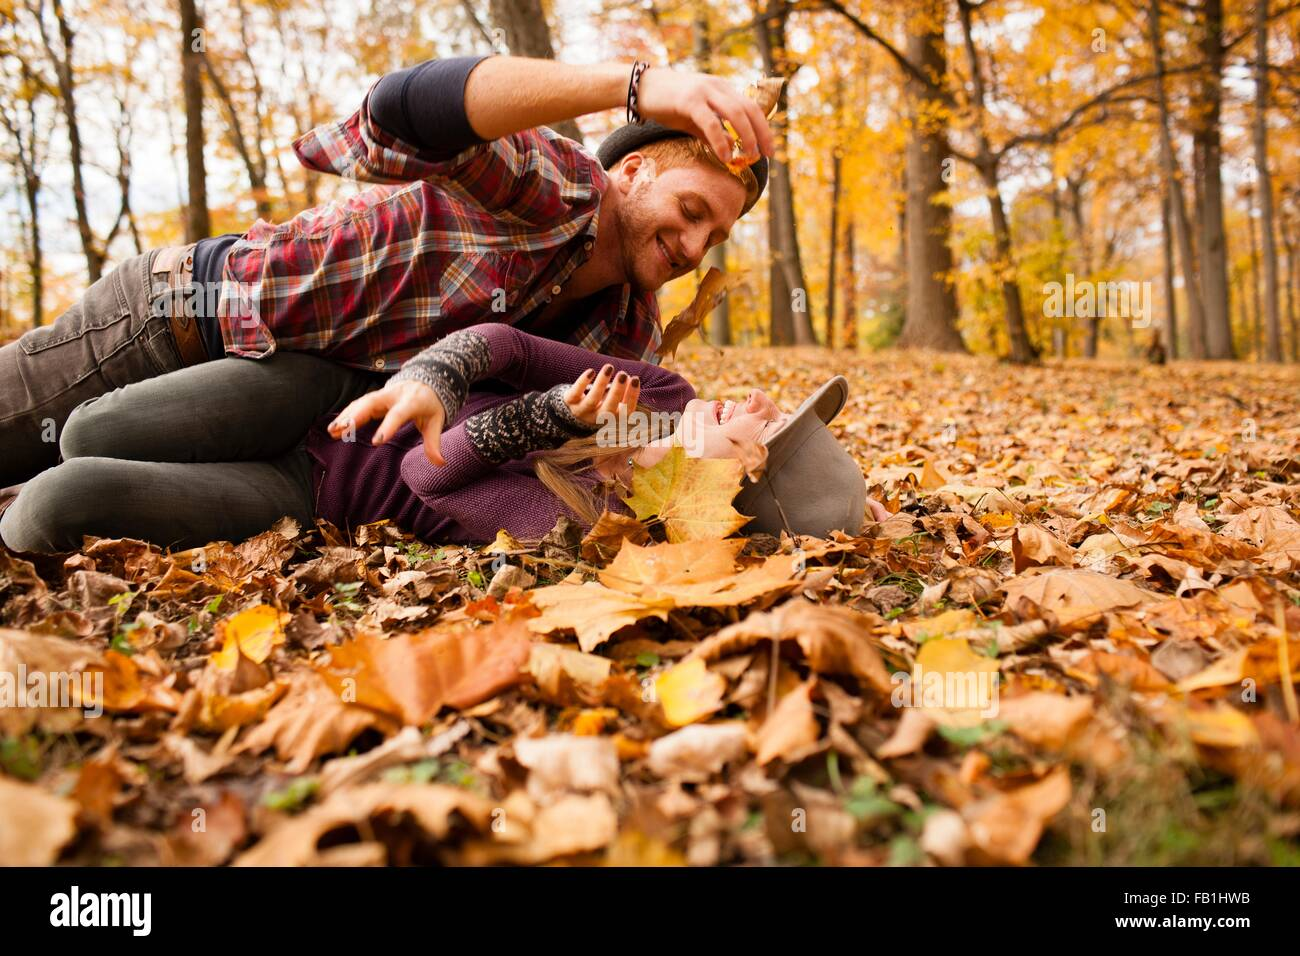 Young couple play fighting with autumn leaves in forest - Stock Image